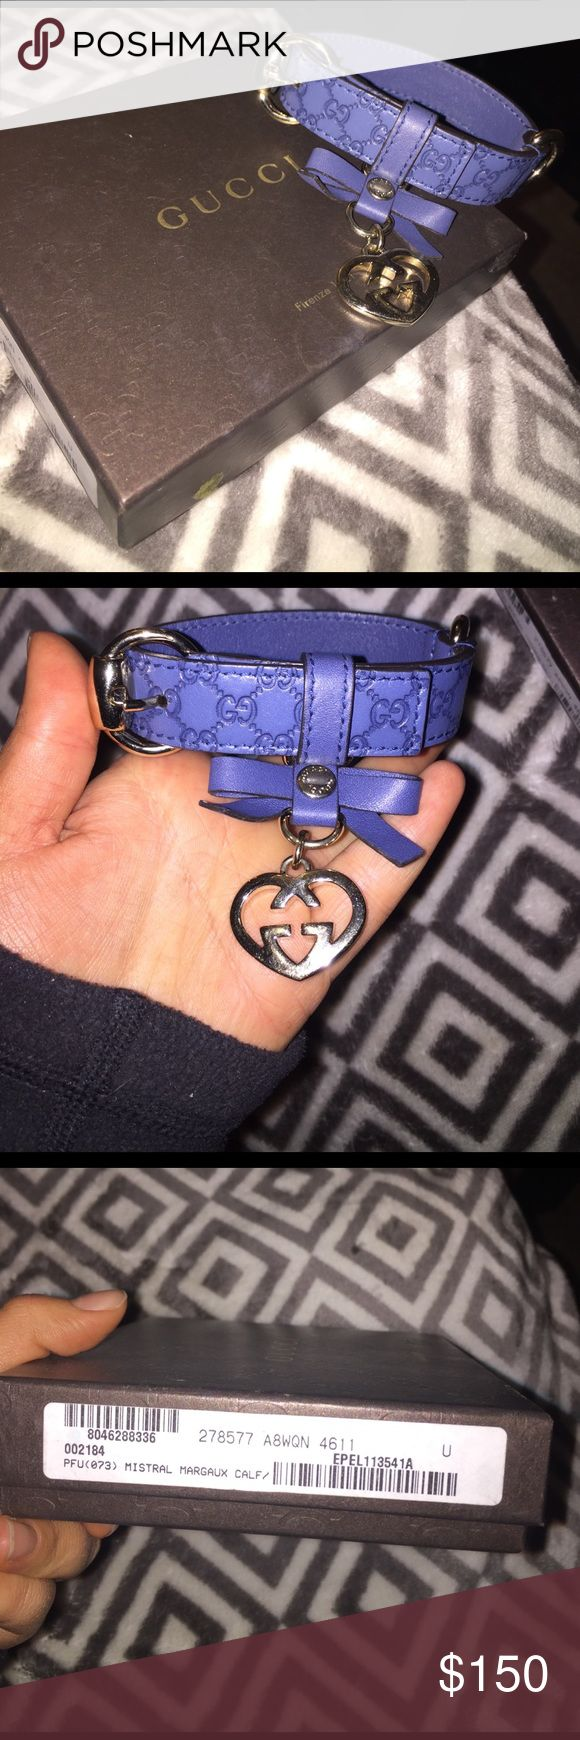 Gucci dog collar Authentic Gucci dog collar for small dogs. Has never been worn; New with box Gucci Other